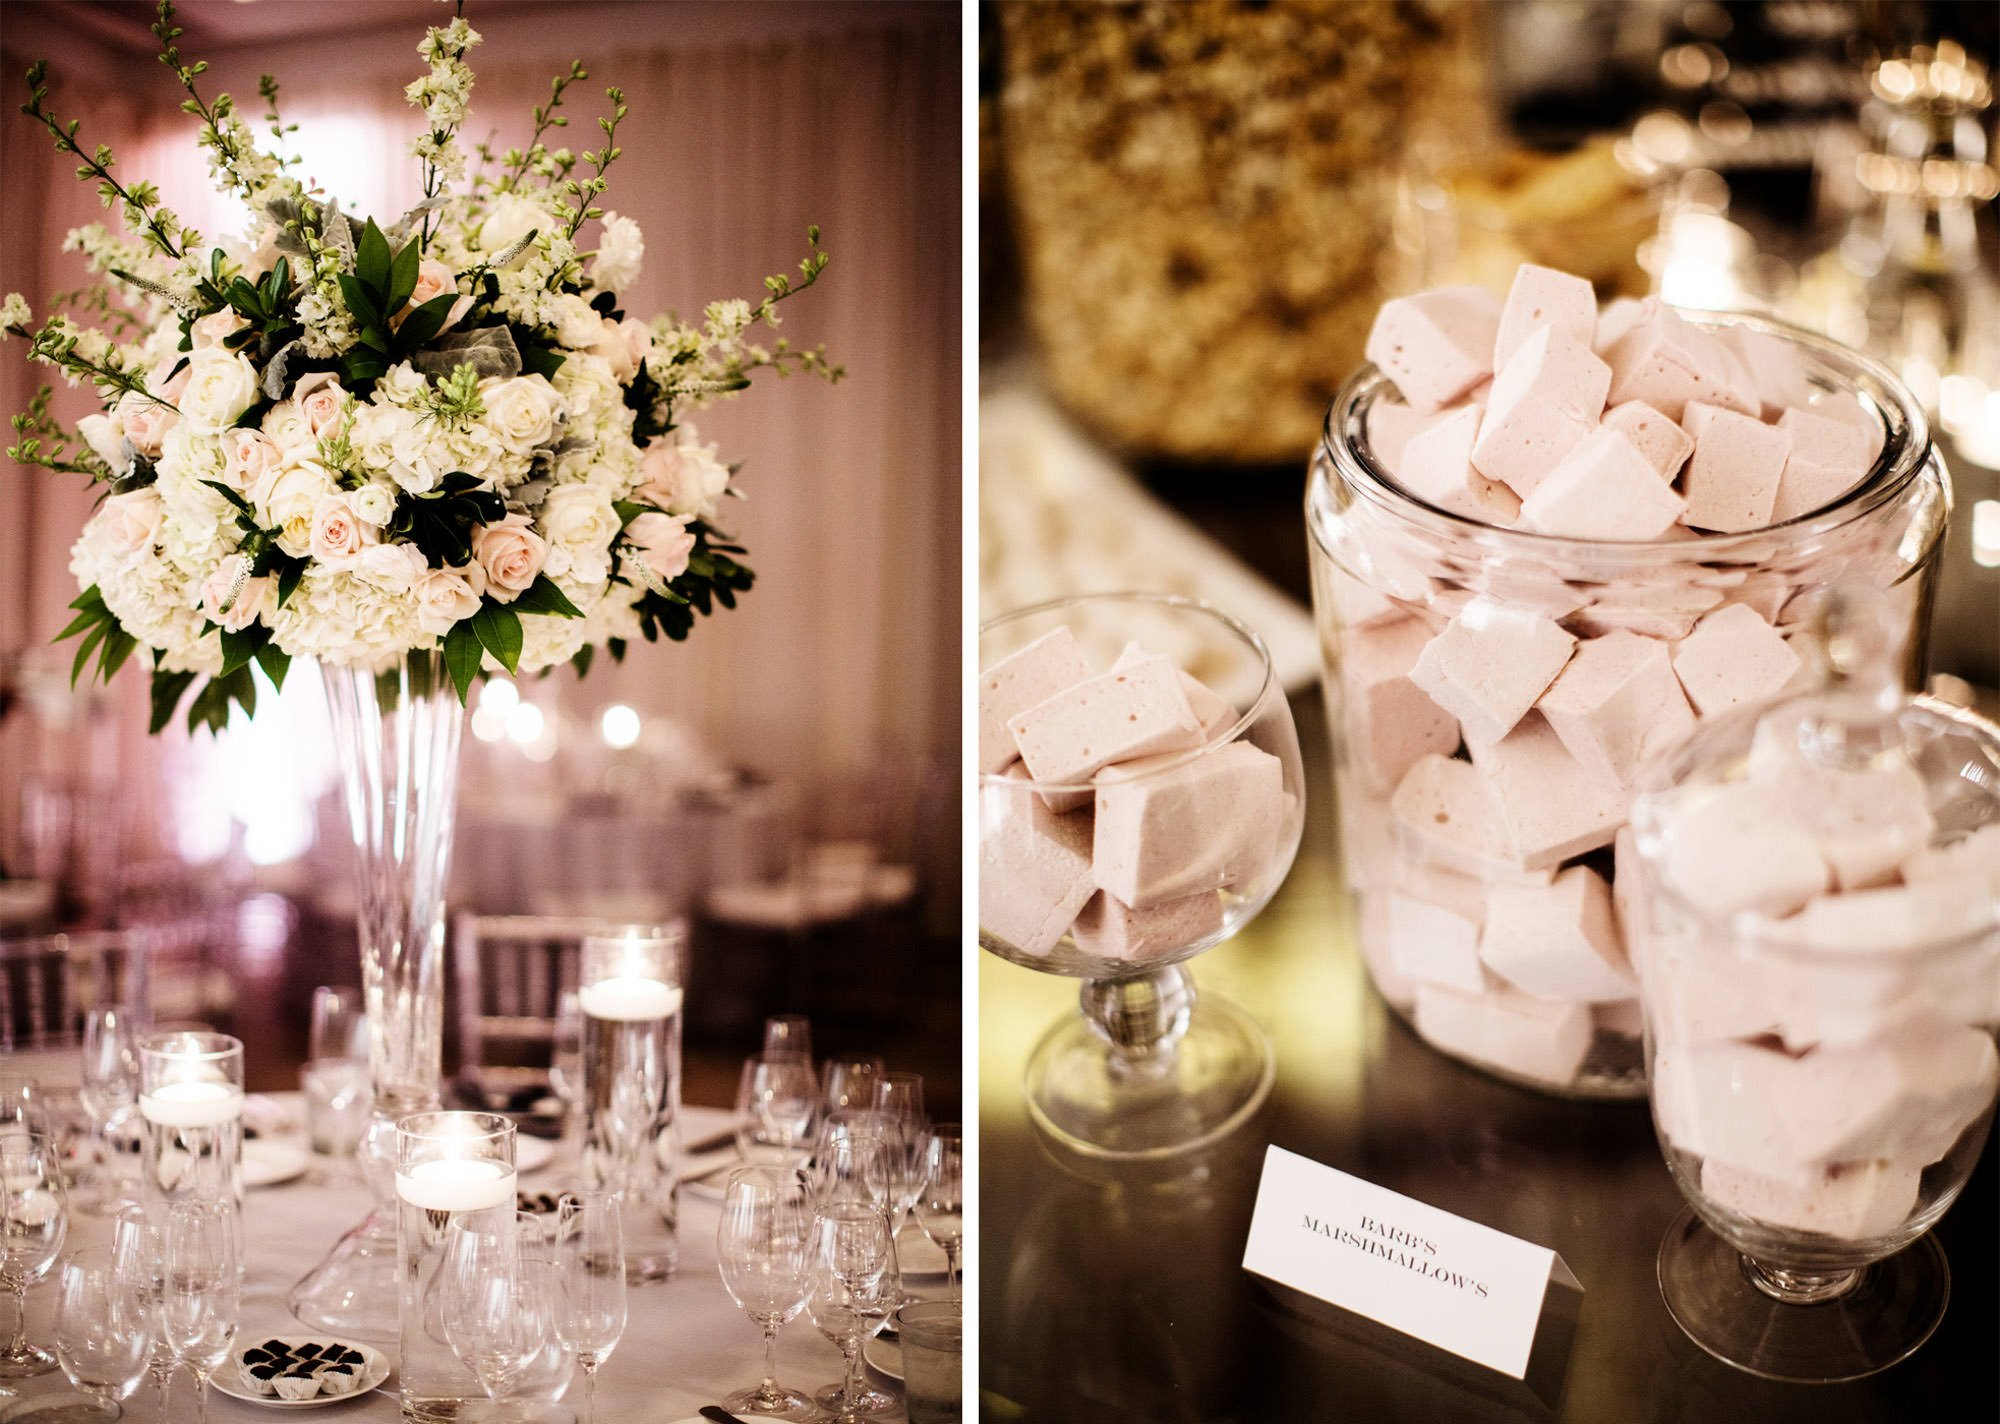 Room Details with Dessert and Flowers